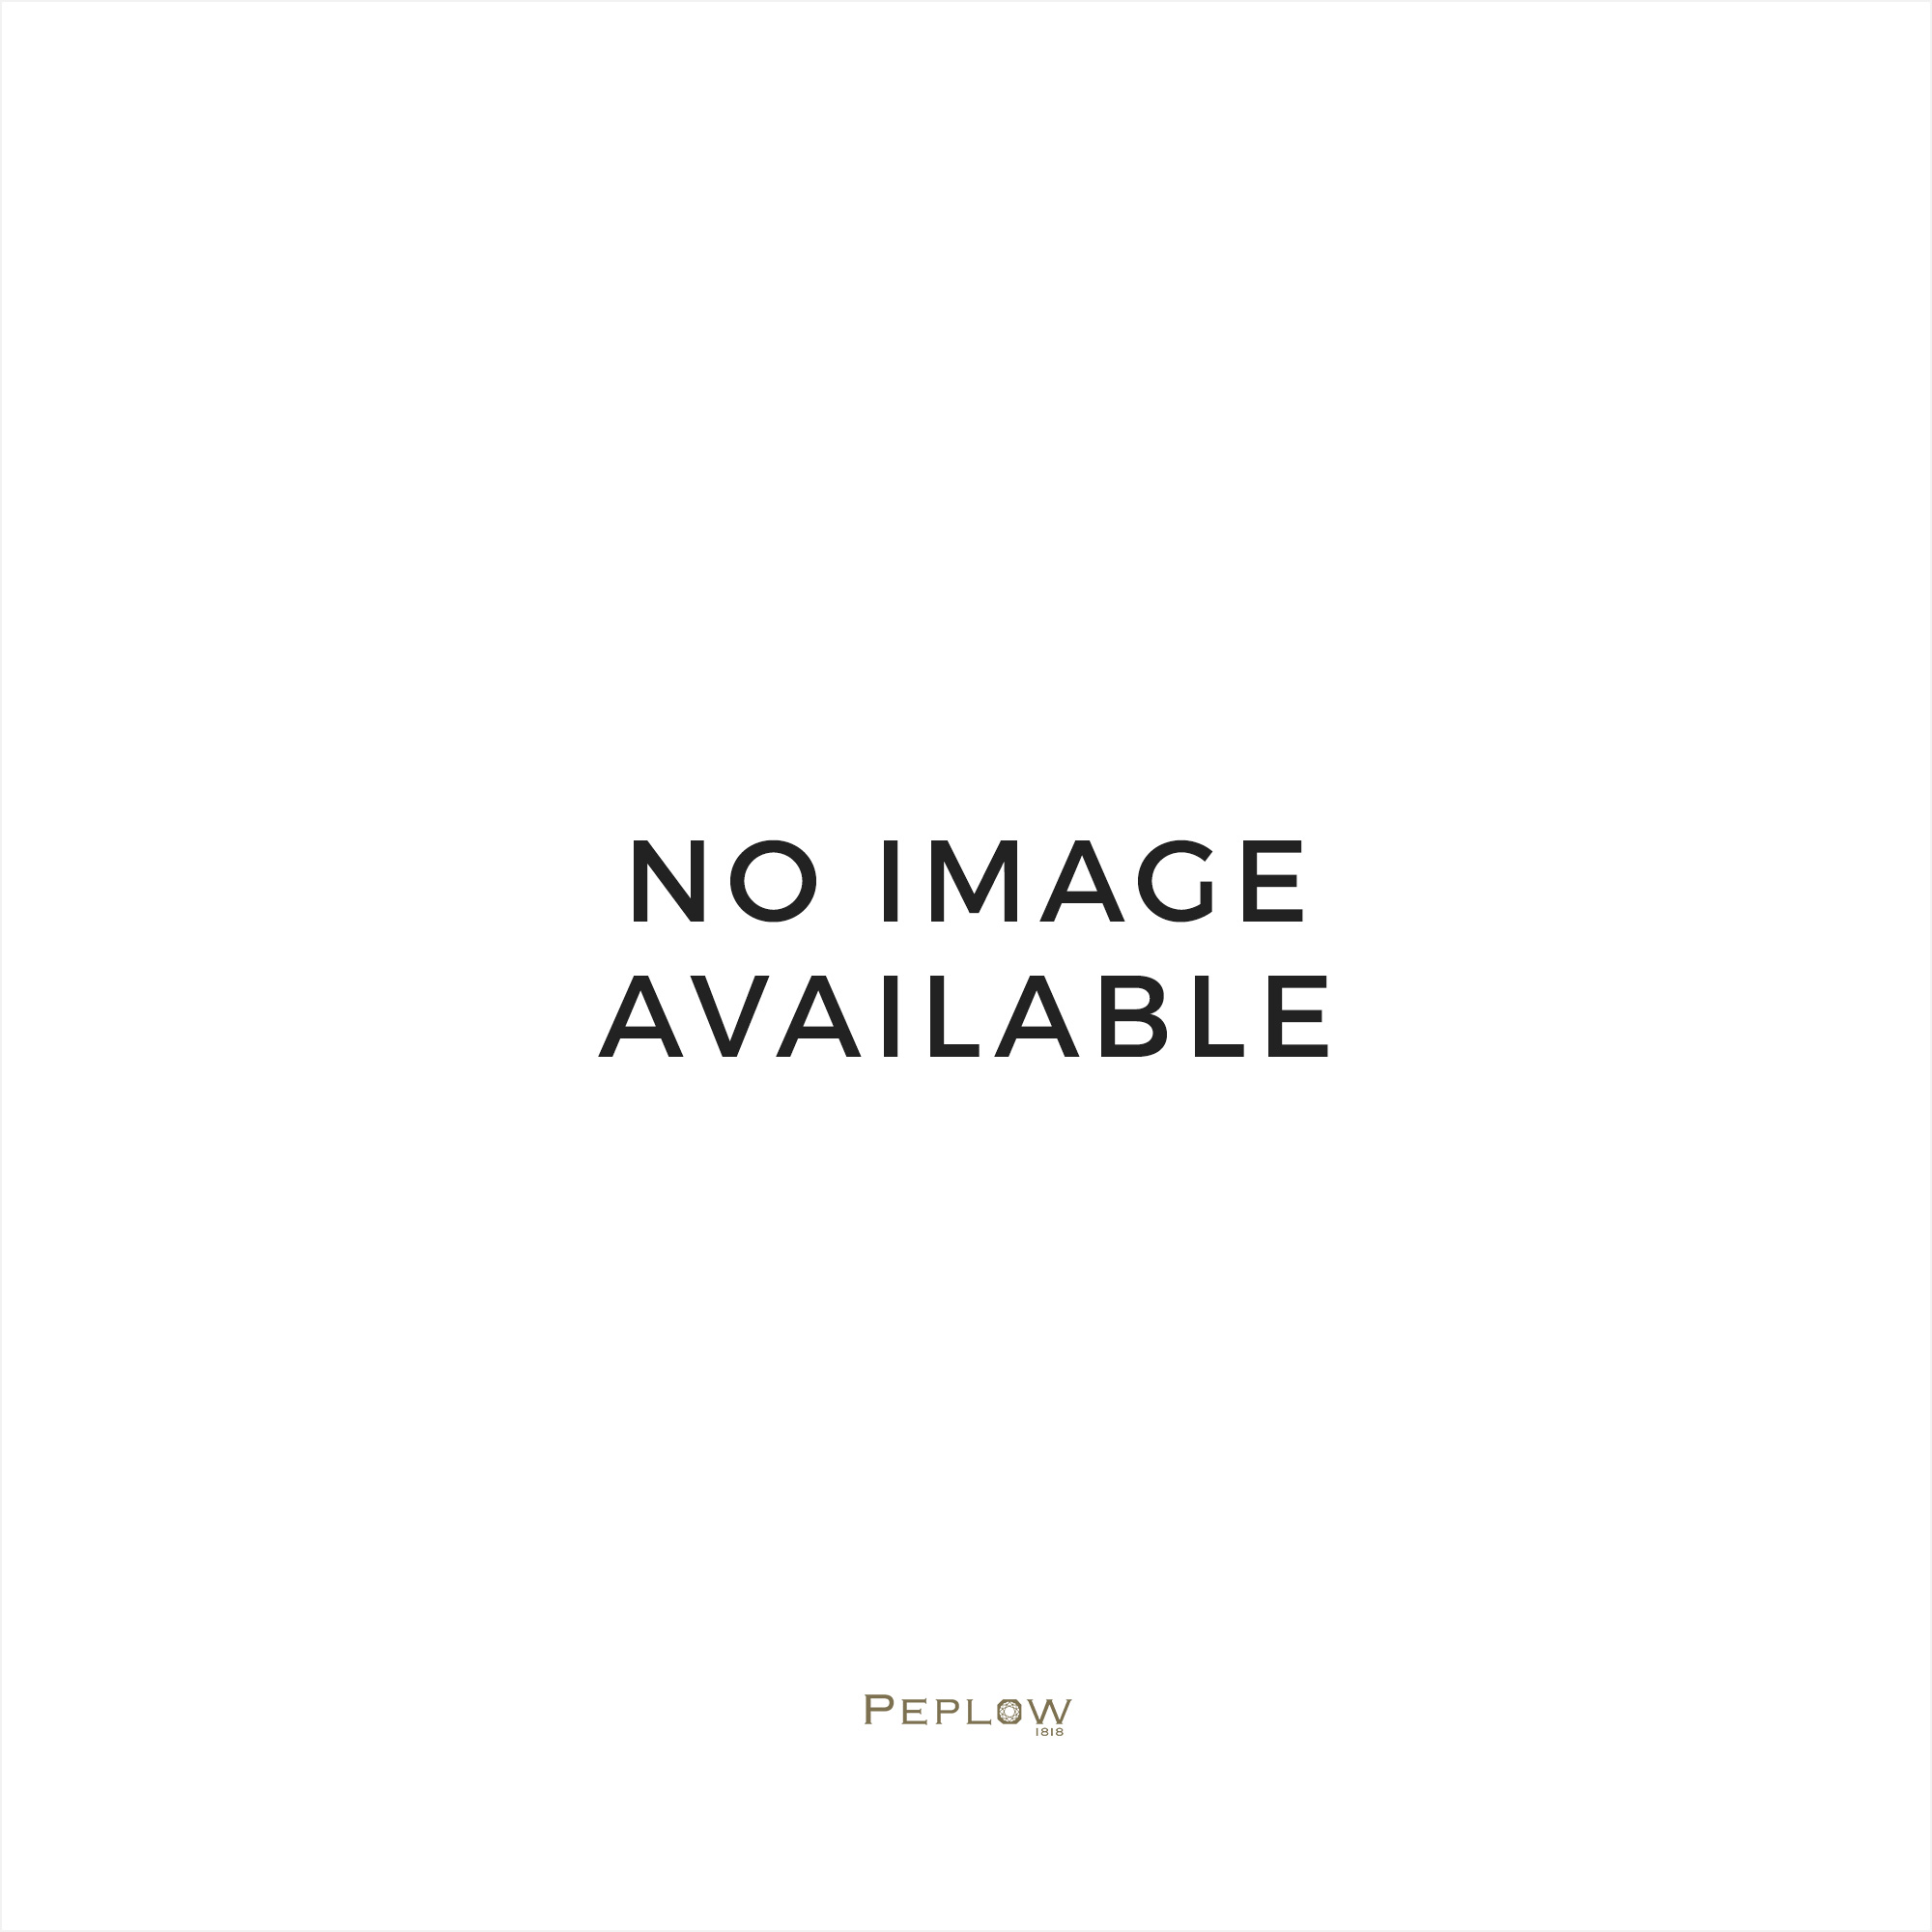 Gent's Solar chronograph from the Astron collection SSE017J1